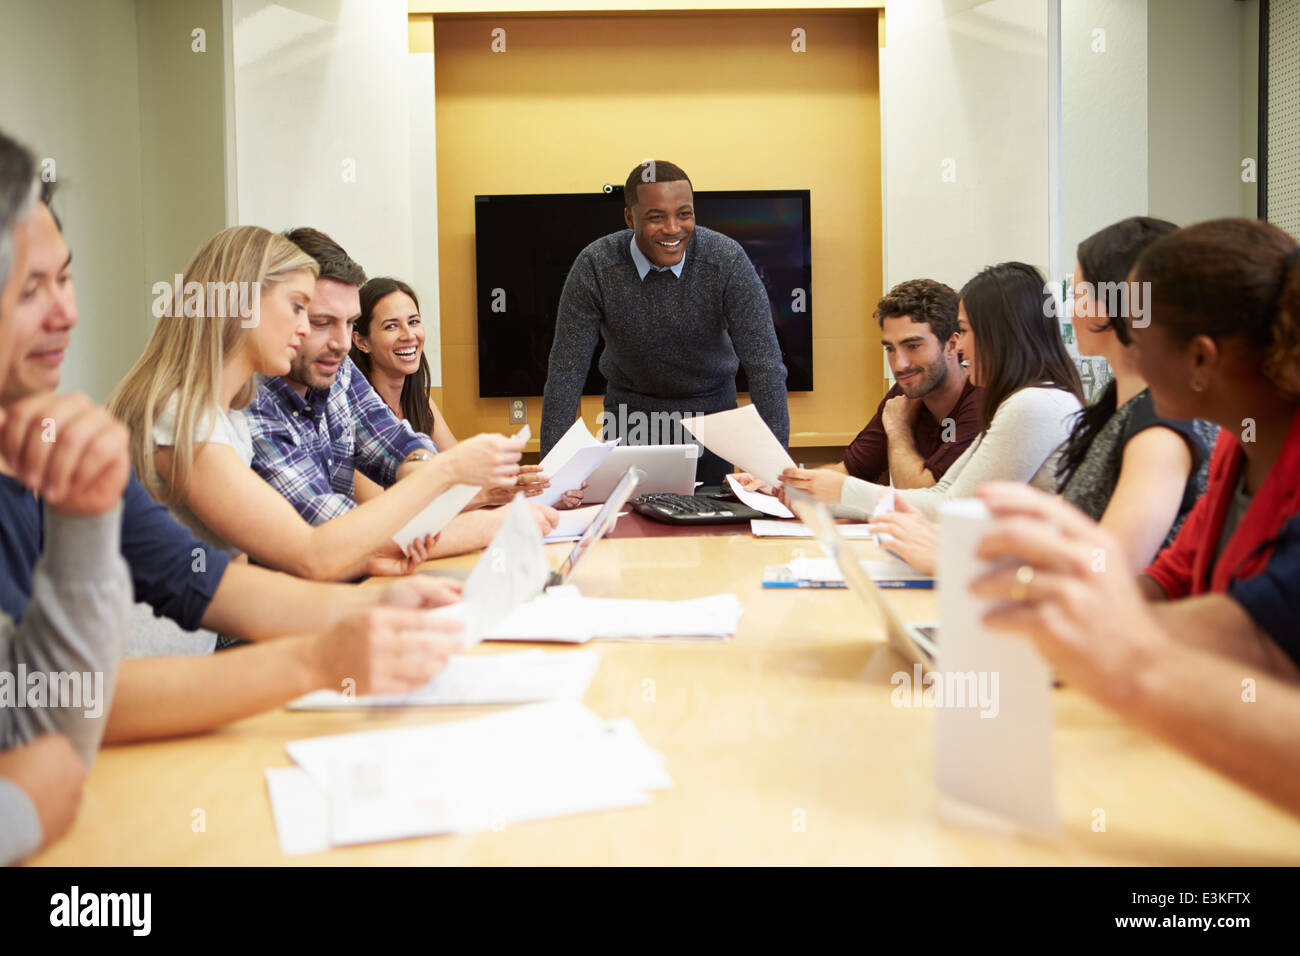 Male Boss Addressing Meeting Around Boardroom Table - Stock Image